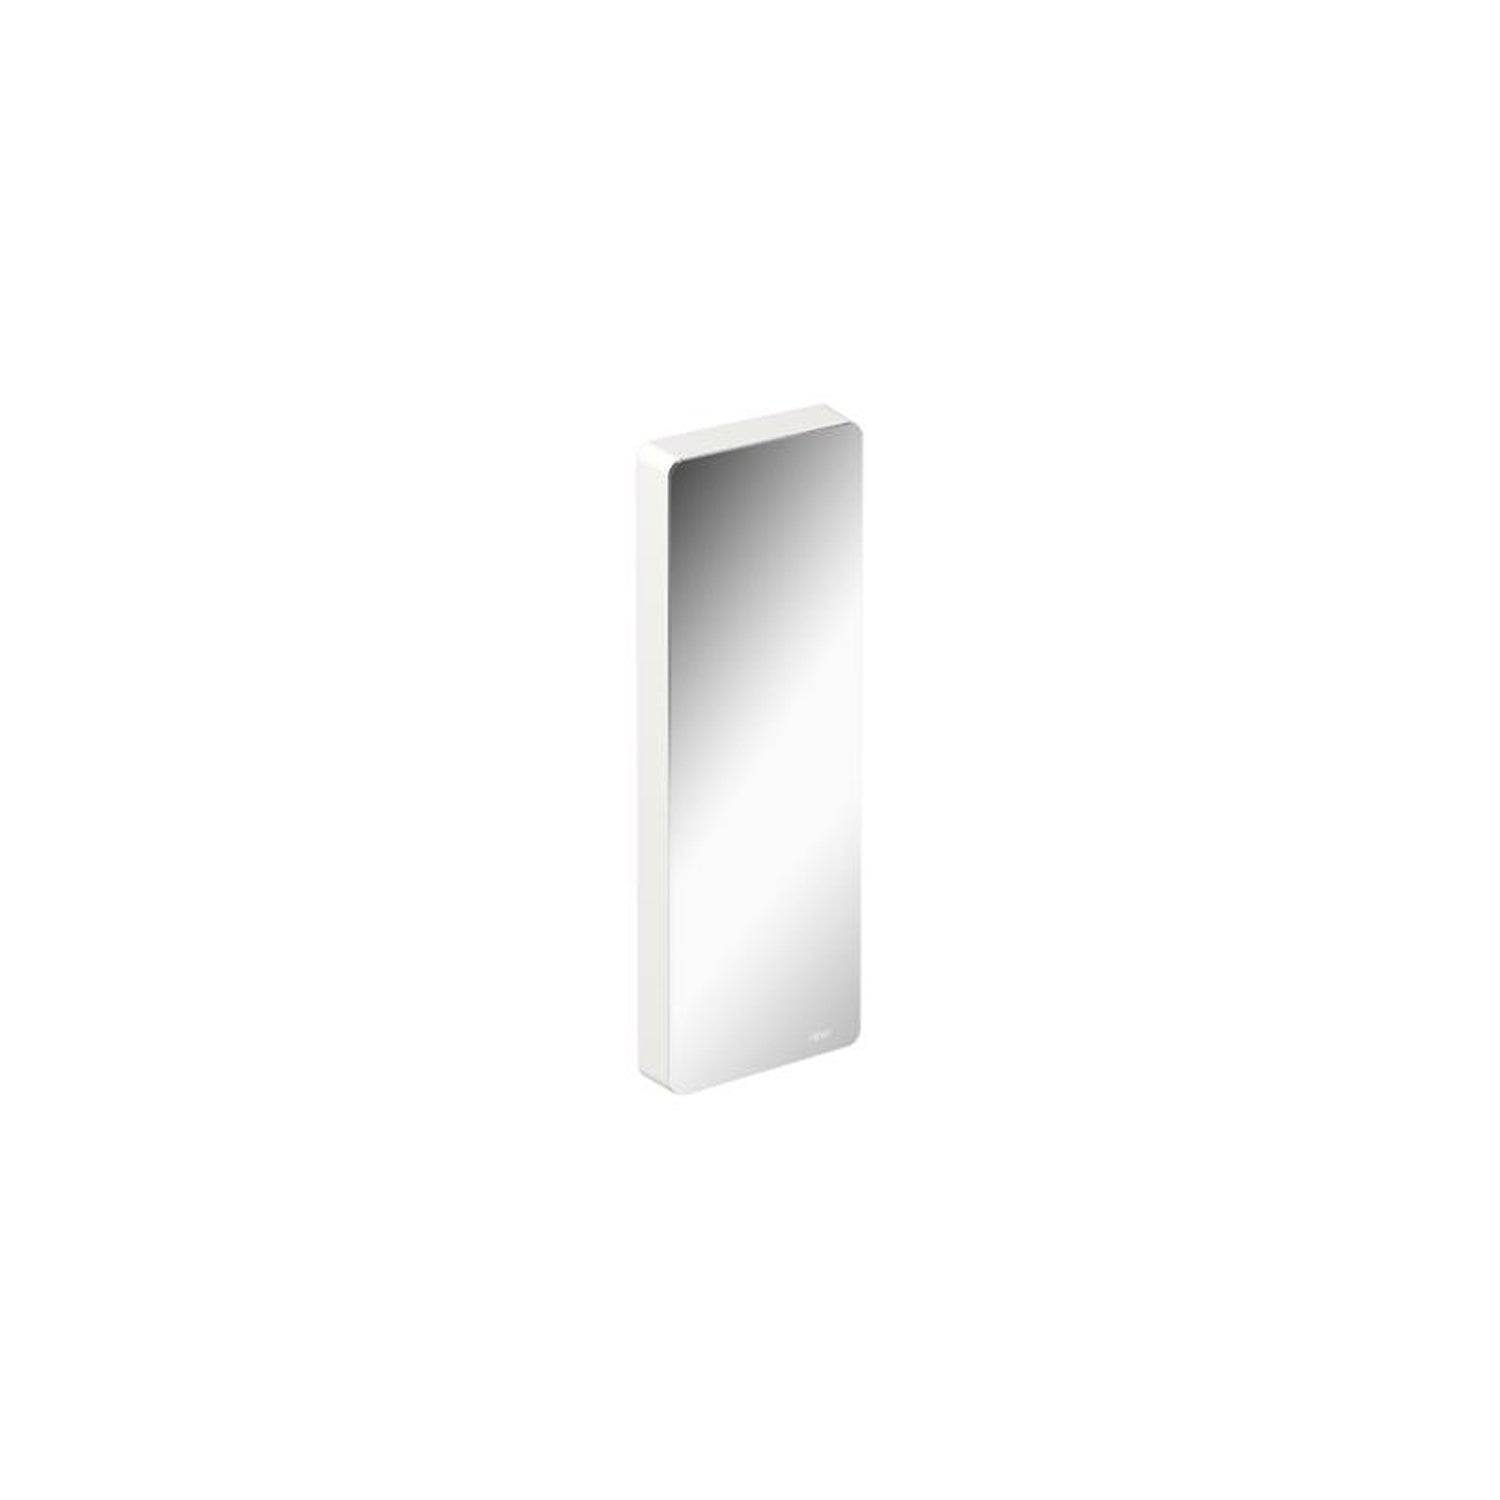 Freestyle Removable Hinged Grab Rail Cover with a chrome finish on a white background